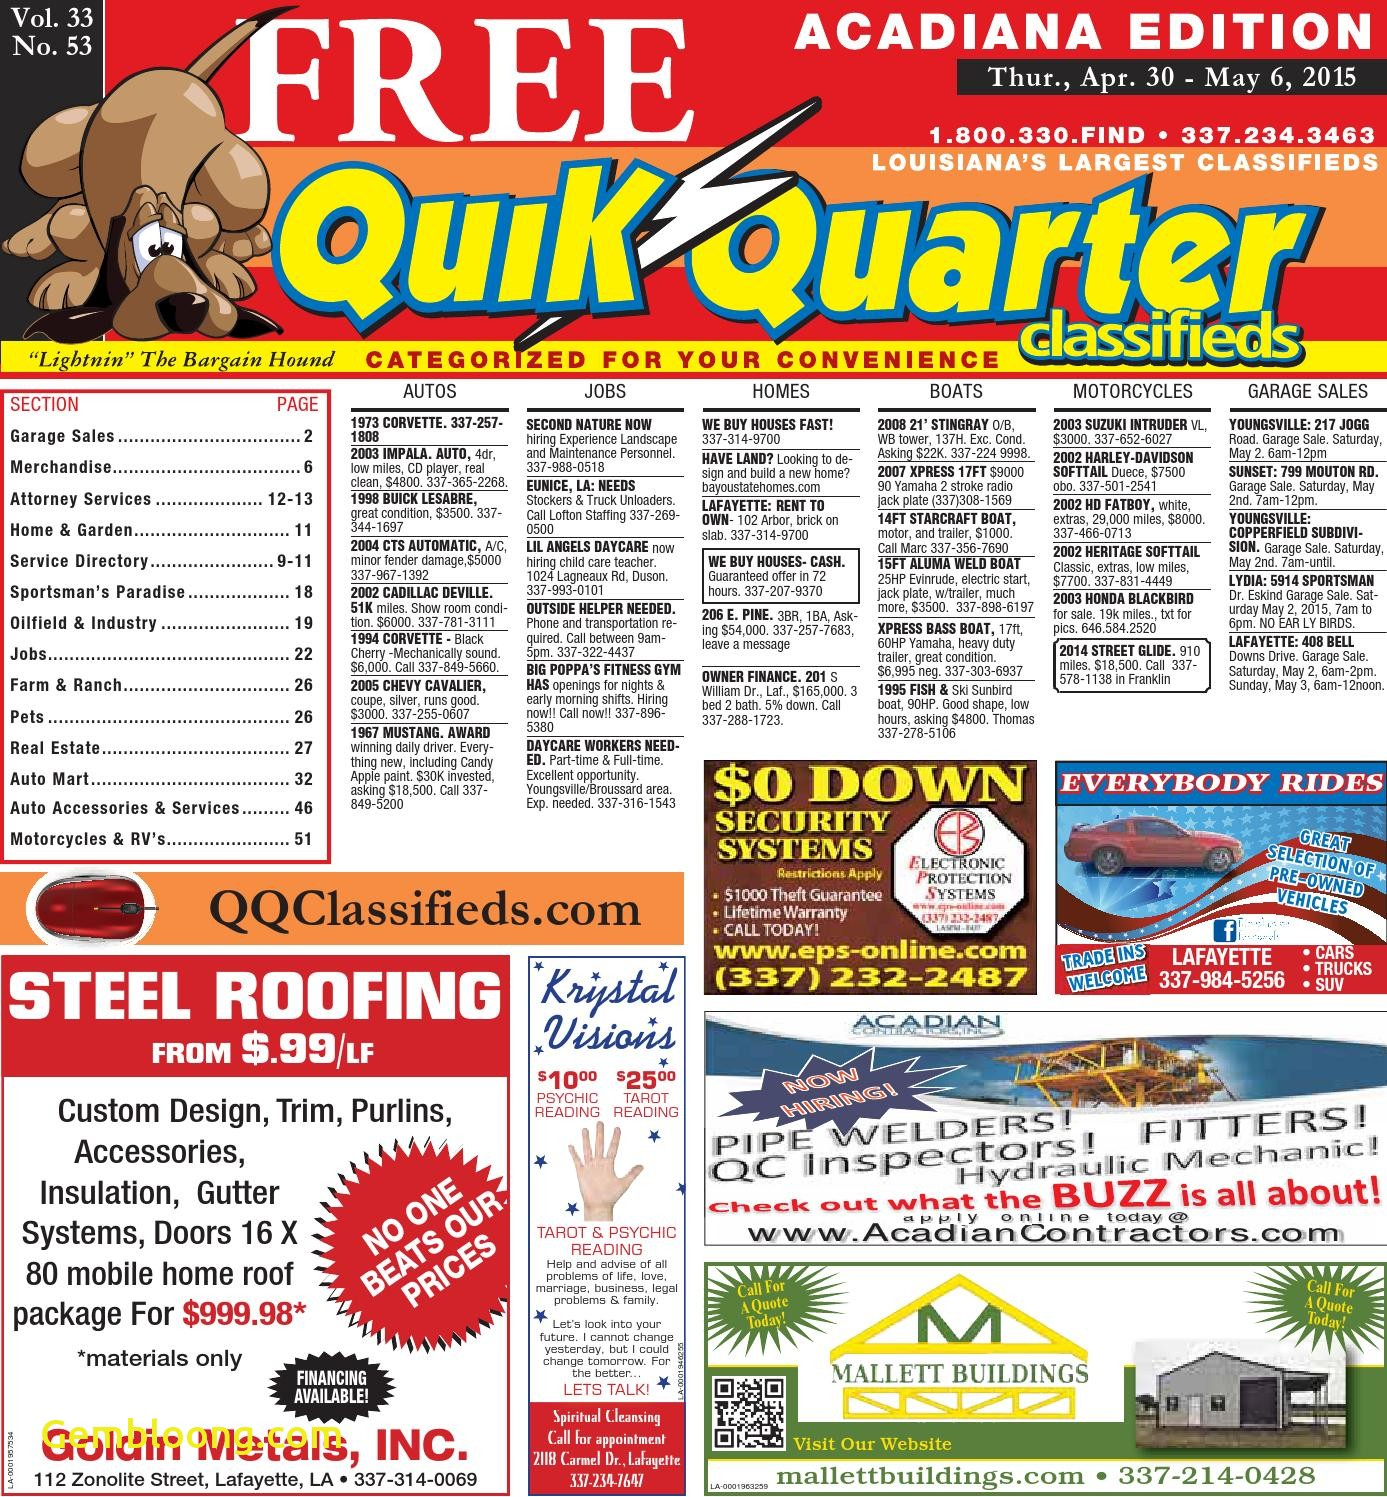 Cheap Carfax Check Lovely Qq Acadiana 04 30 2015 by Part Of the Usa today Network issuu